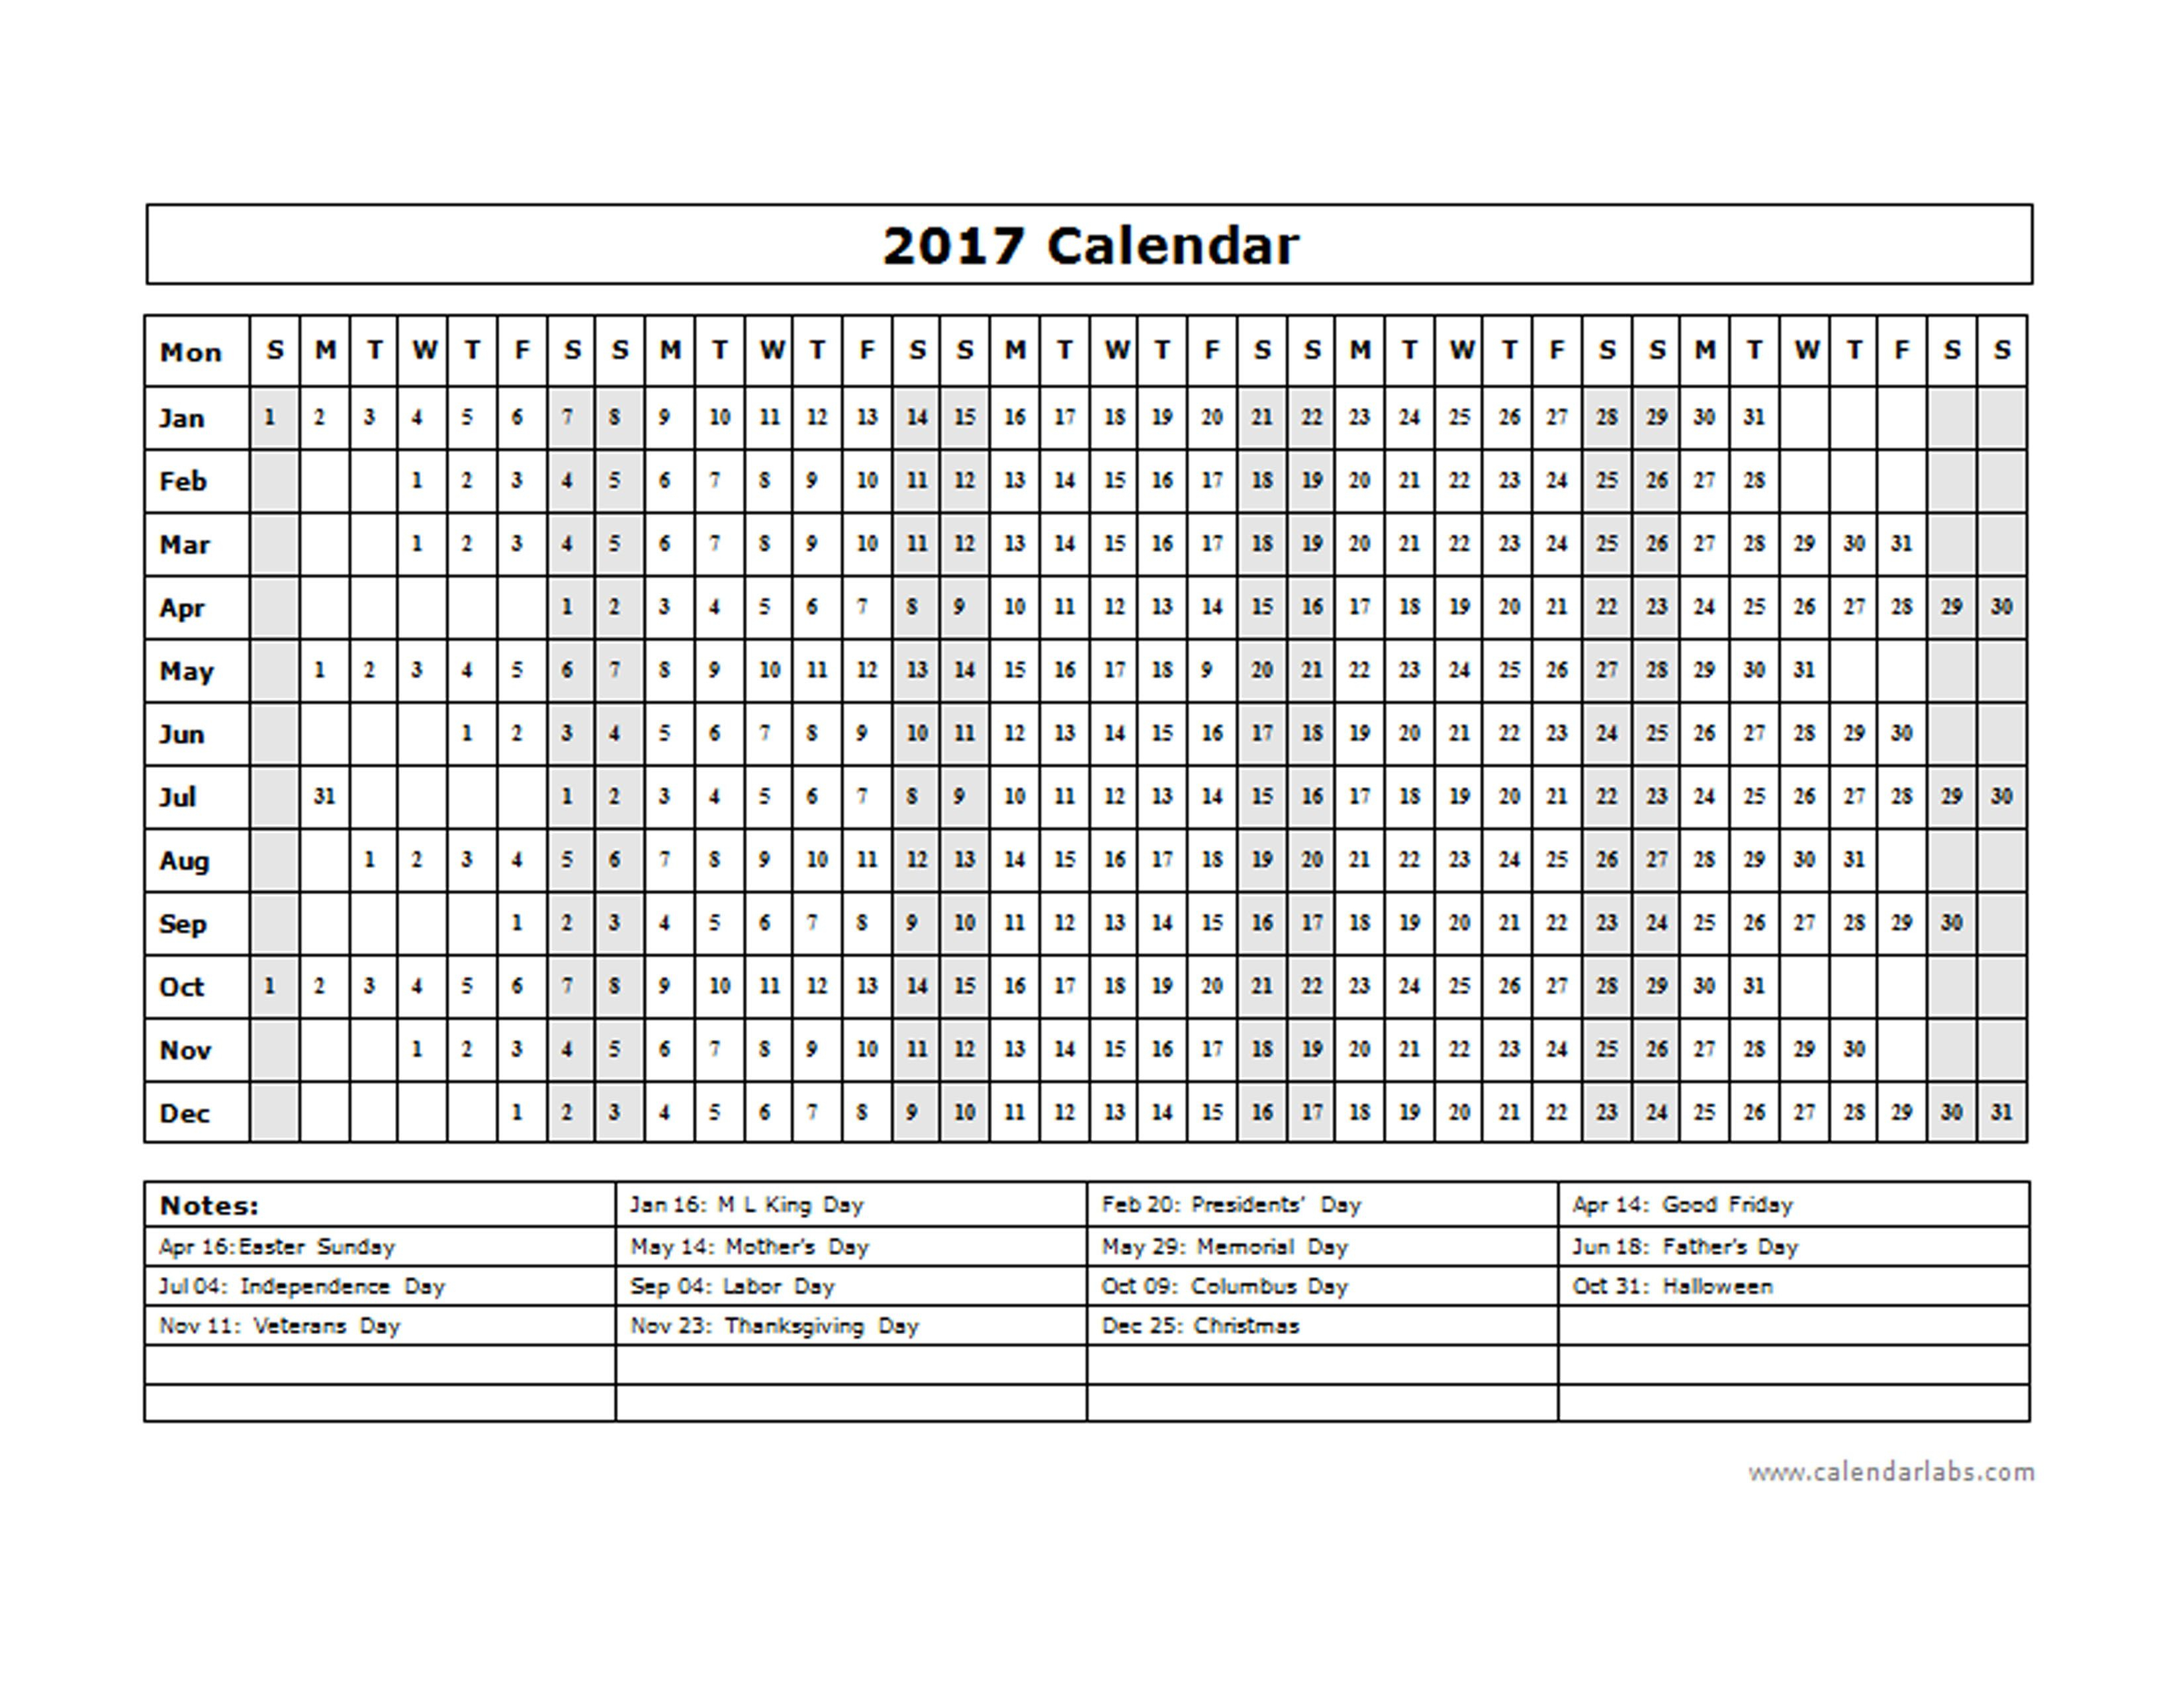 2017 Calendar Template Year At A Glance Free Printable Templates within Calendar Template Year At A Glance